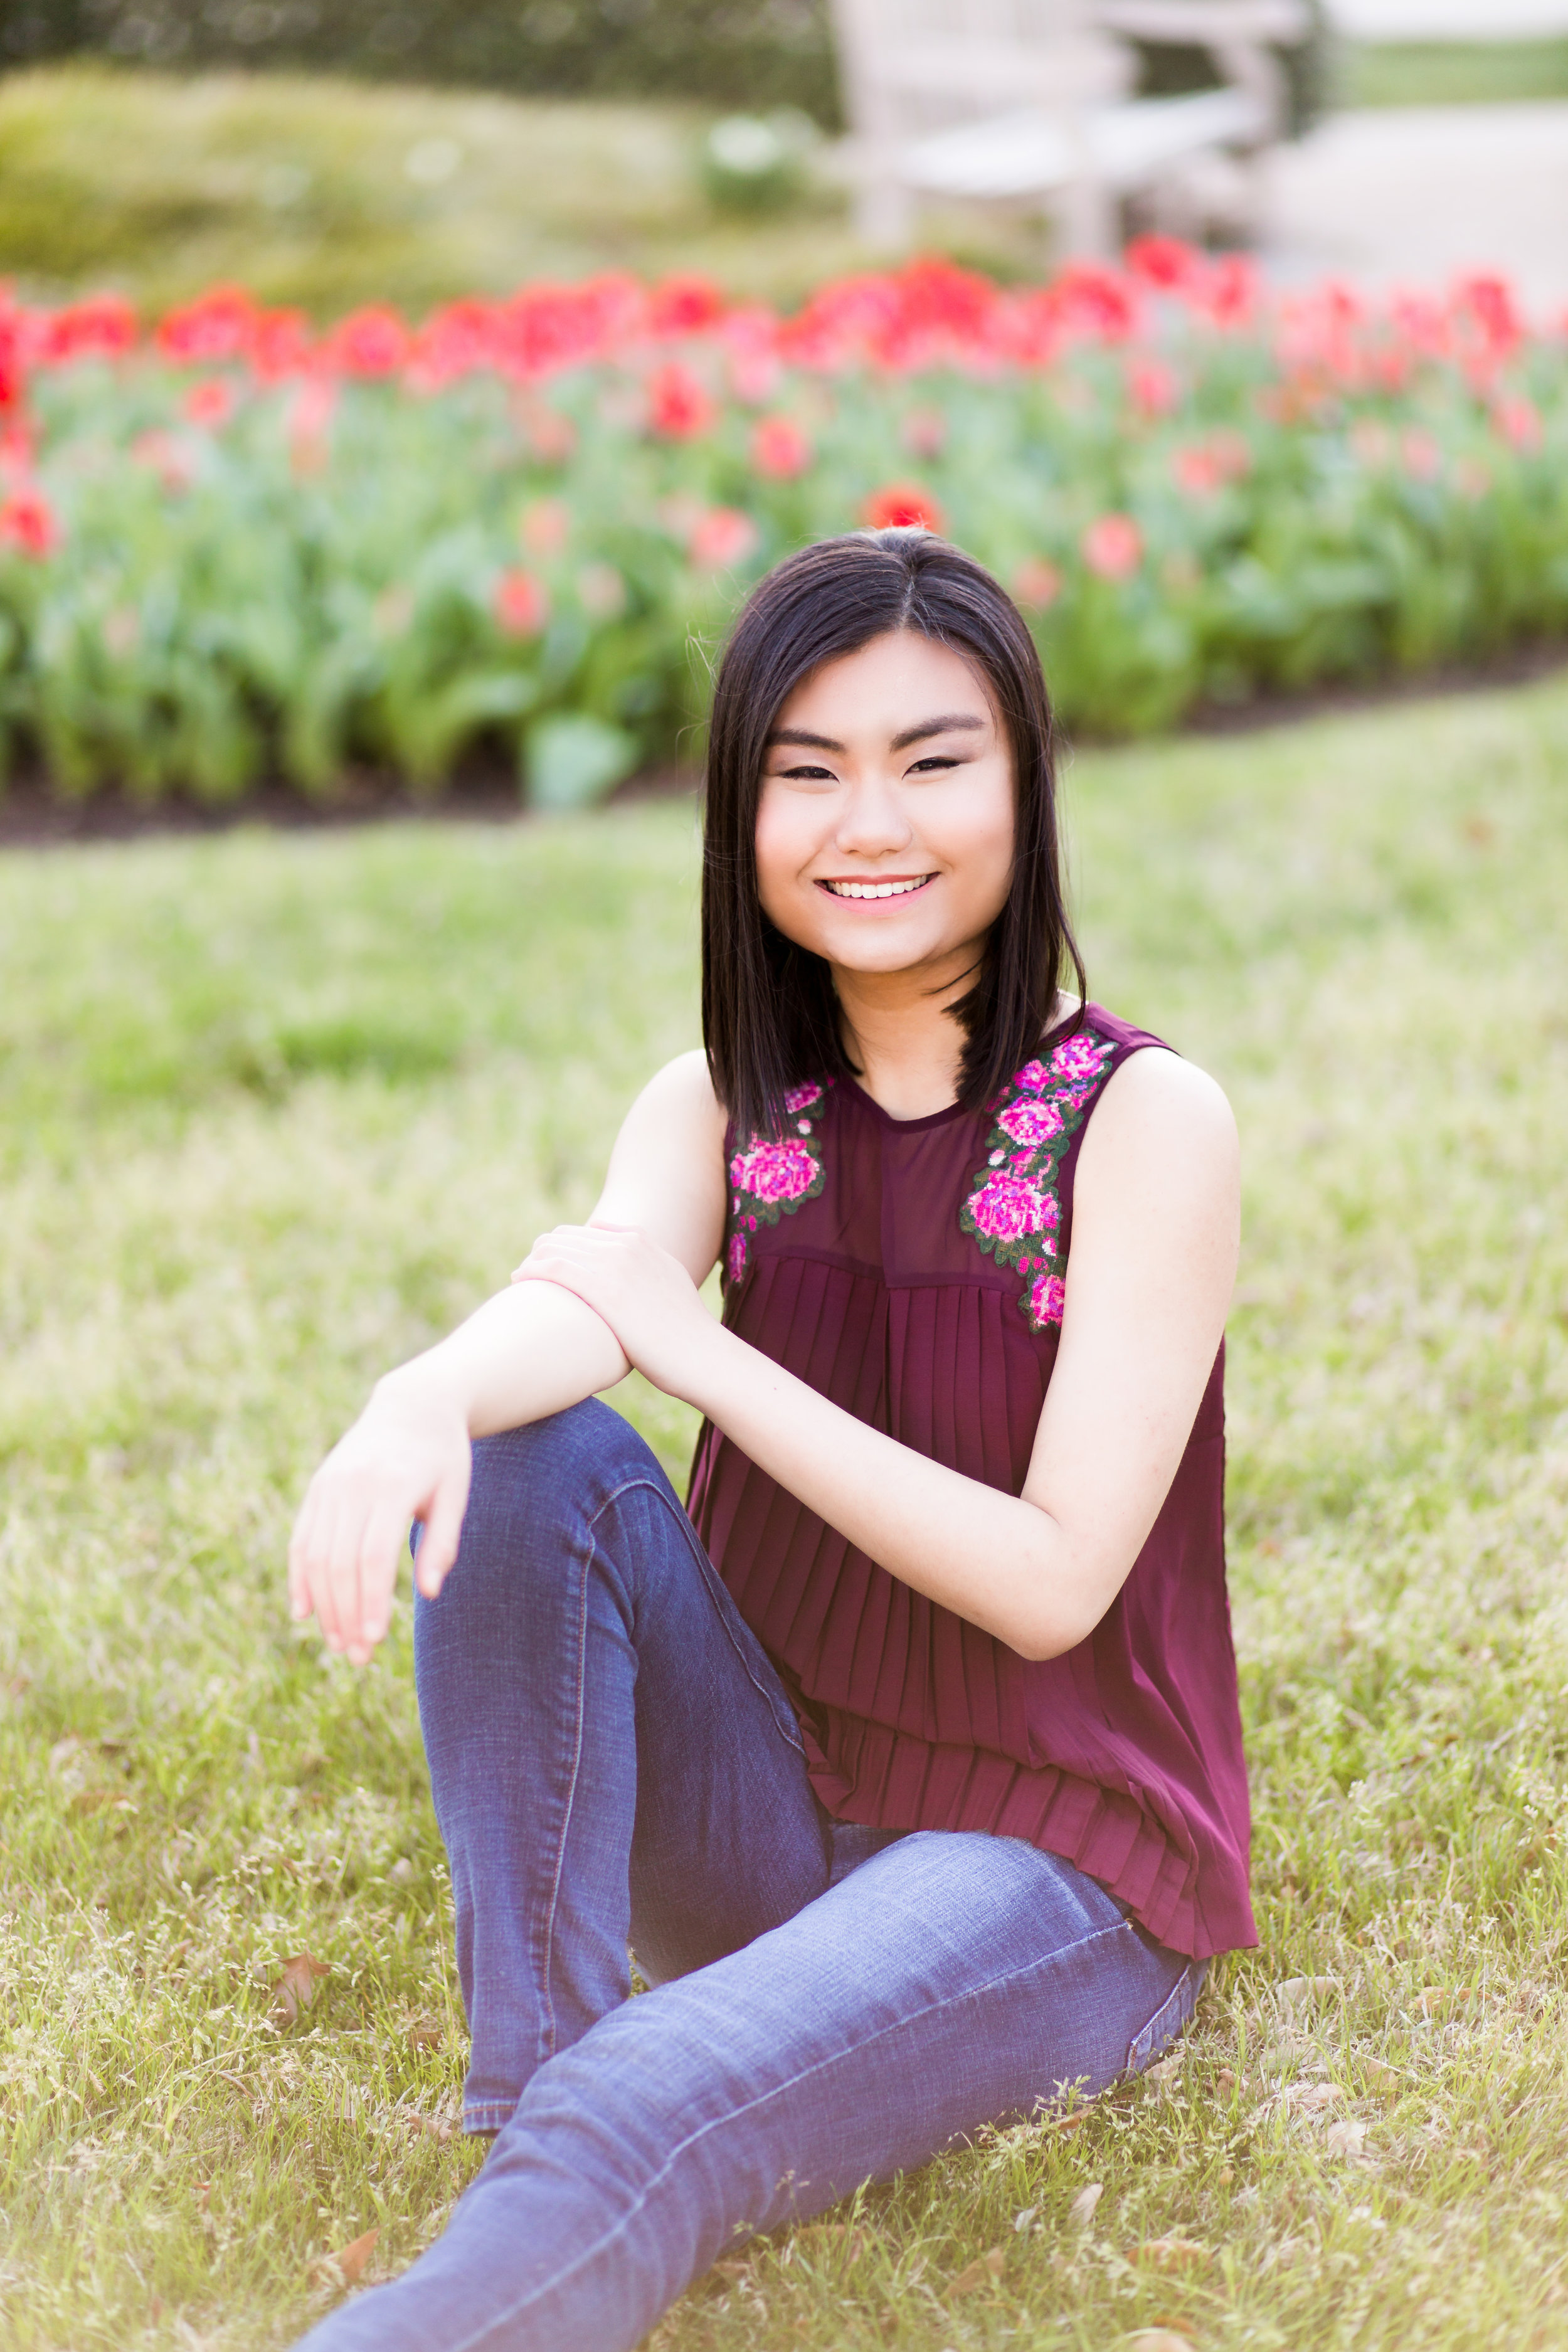 norman north senior photographer spring flowers oklahoma okc oklahoma city okc